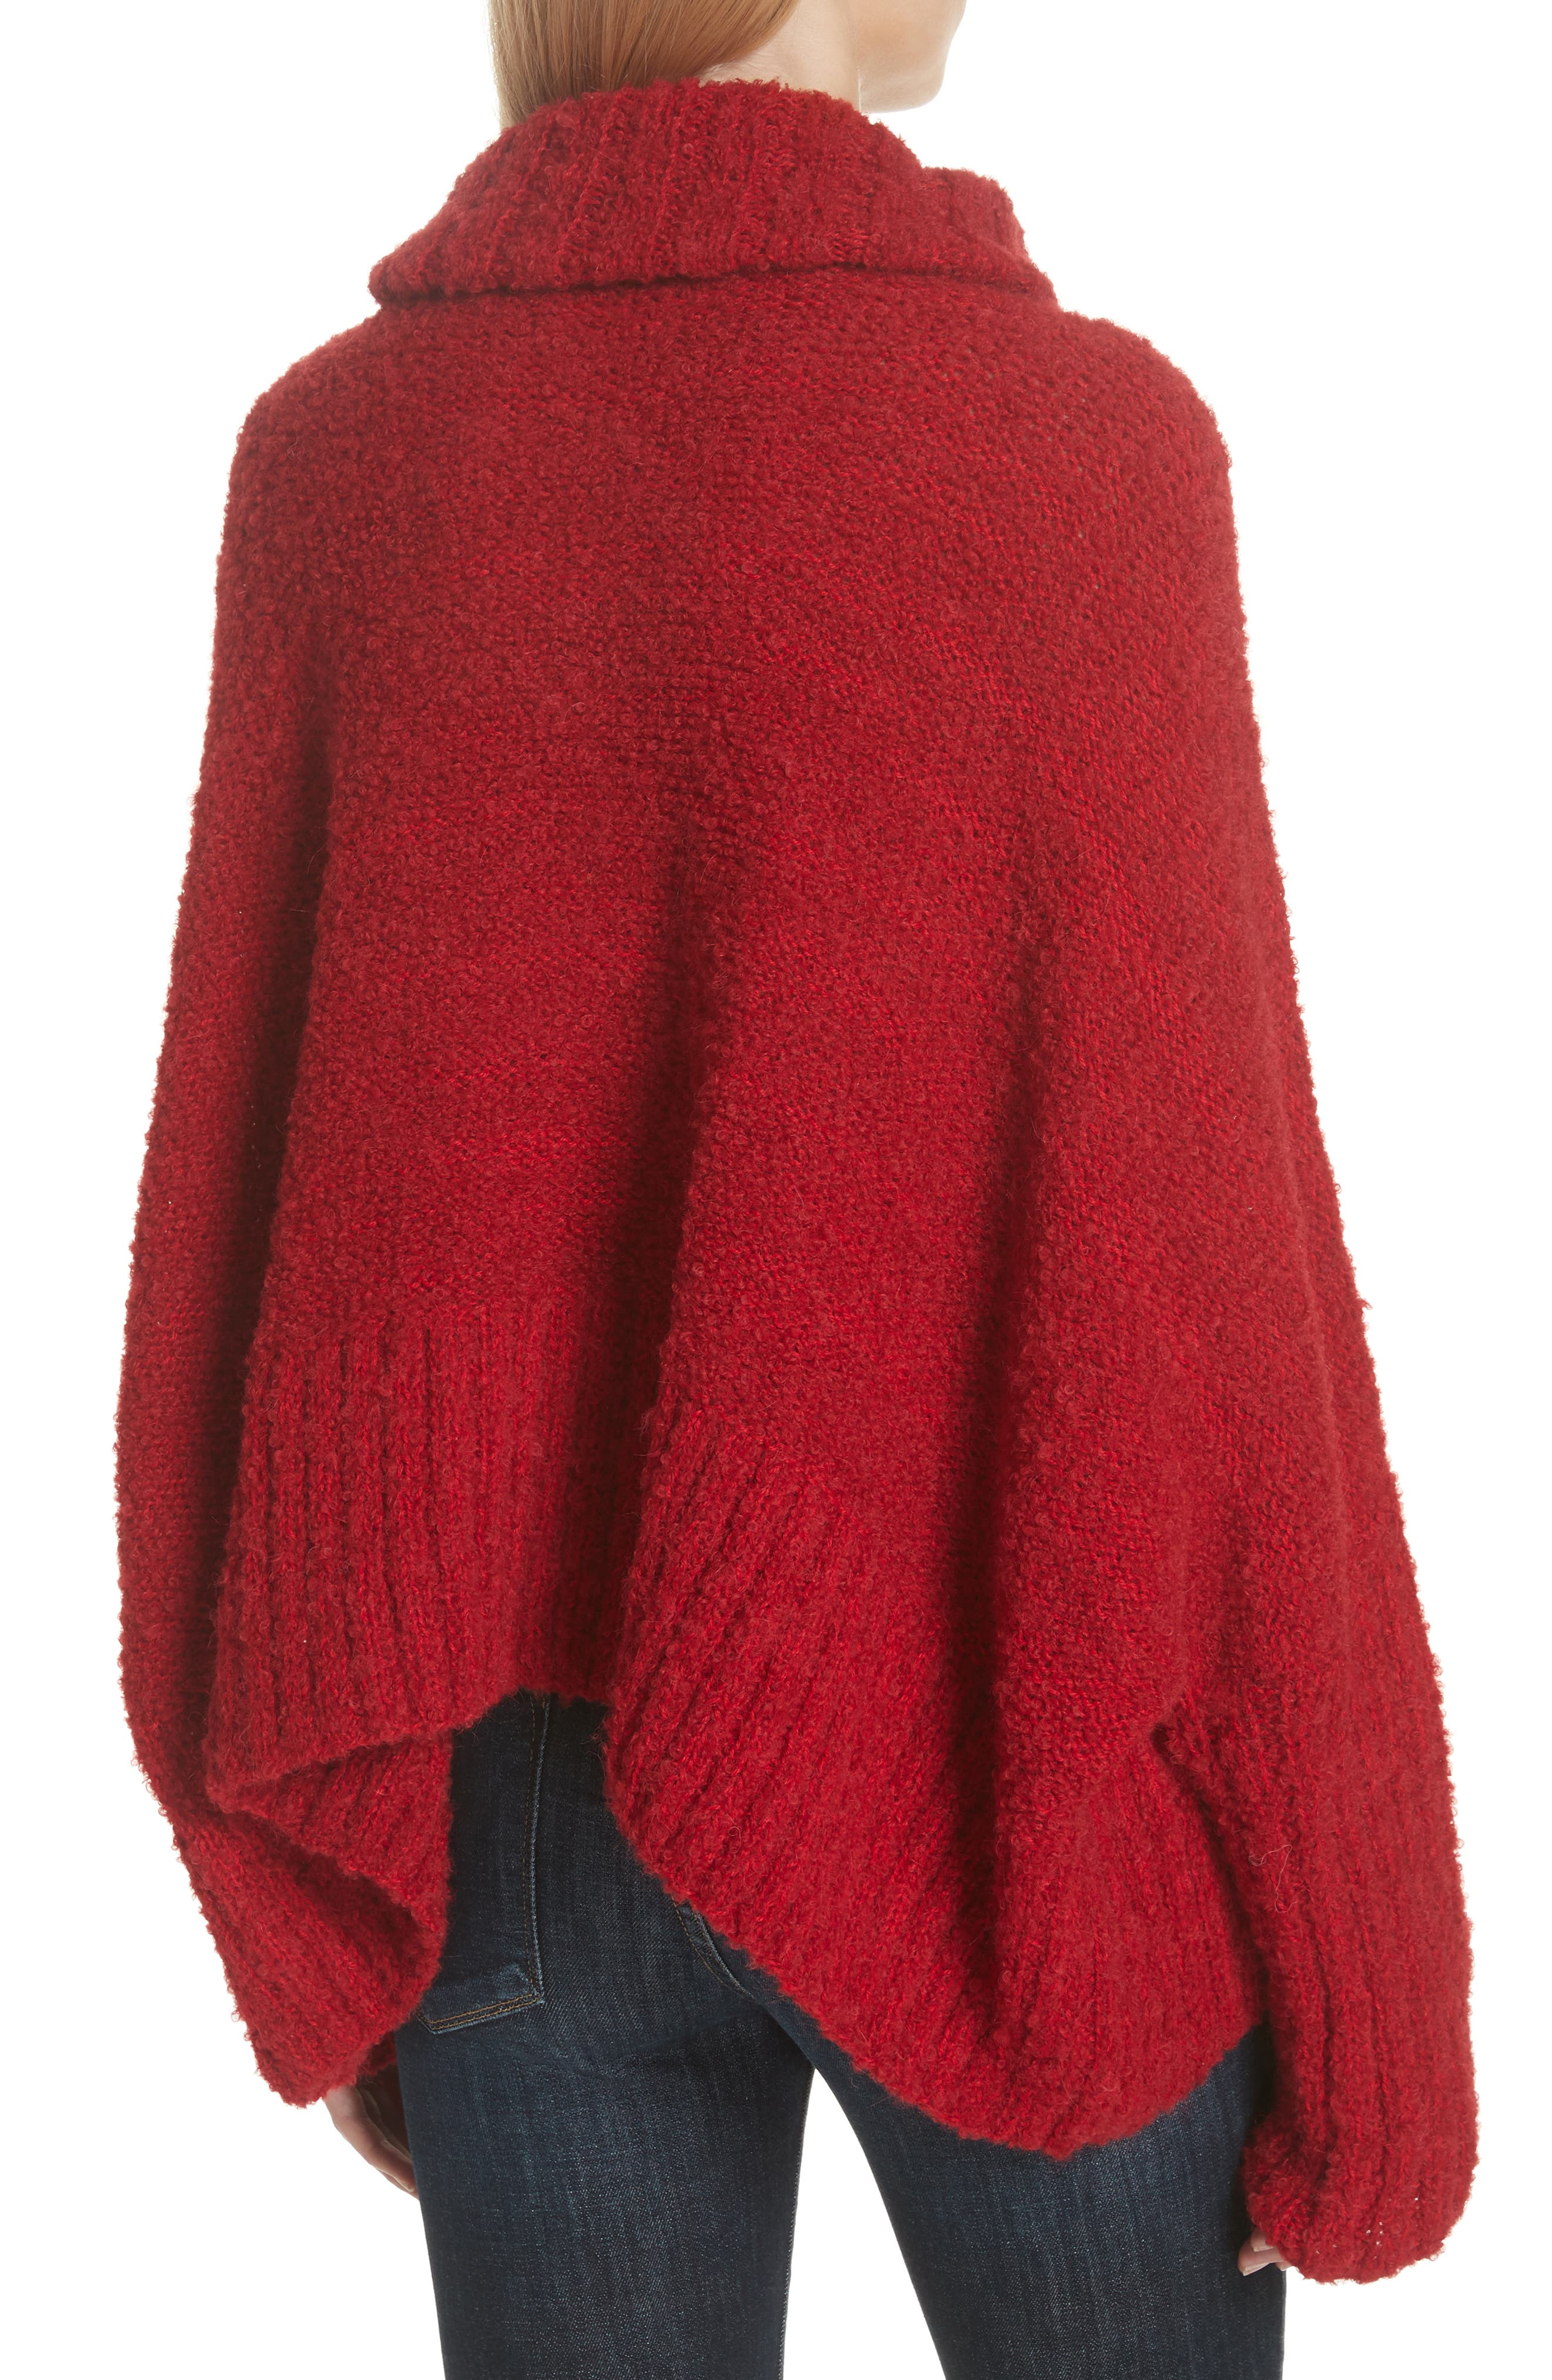 Alpaca & Wool Blend Swing Turtleneck,                             Alternate thumbnail 2, color,                             600